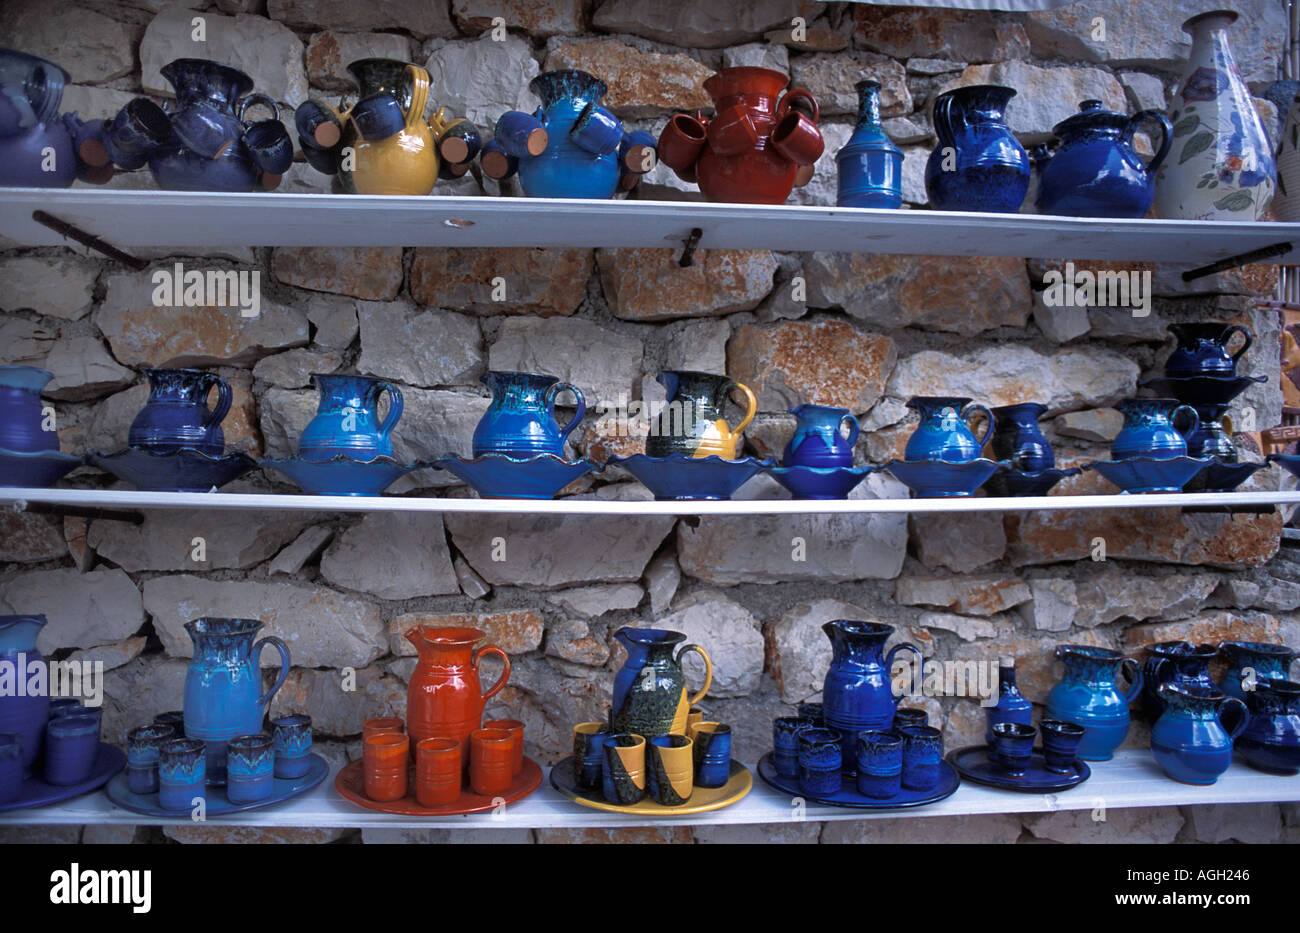 Local ceramics pottery for sale at Volimes a place famous for its handicrafts Zakynthos island Ionian Islands Greece - Stock Image